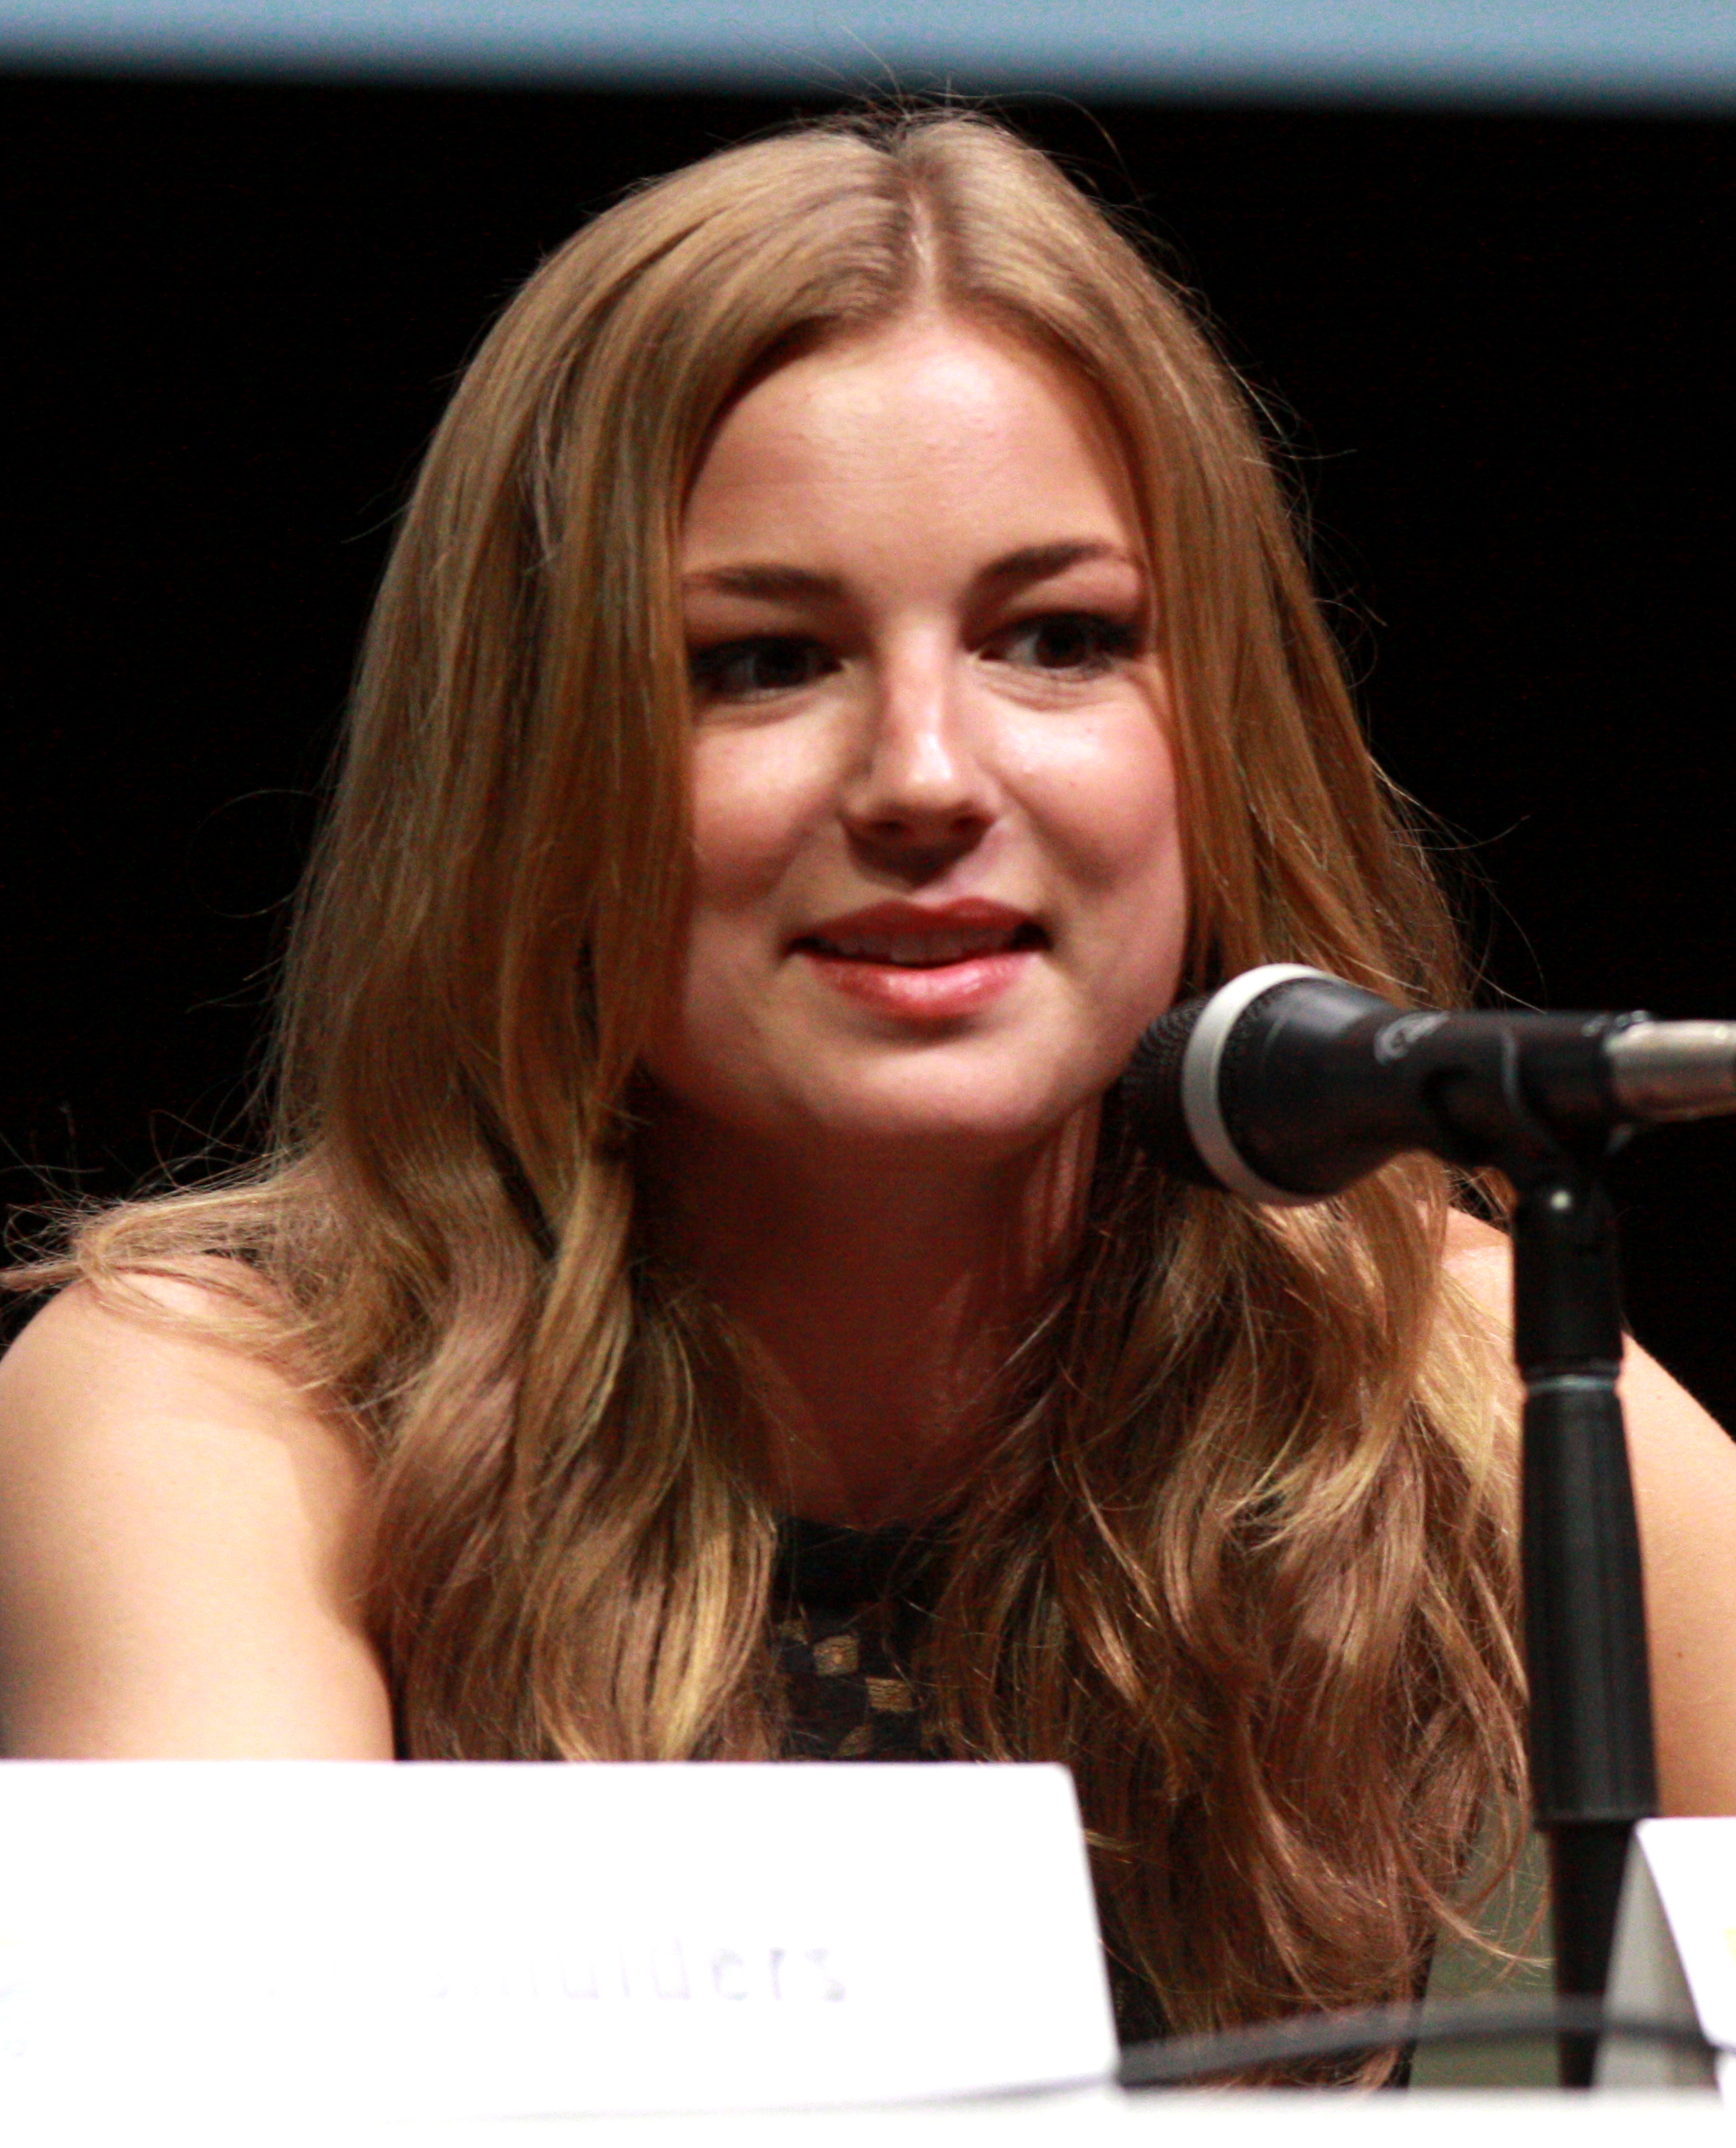 The 31-year old daughter of father Robert VanCamp and mother Peyton VanCamp, 173 cm tall Emily VanCamp in 2018 photo